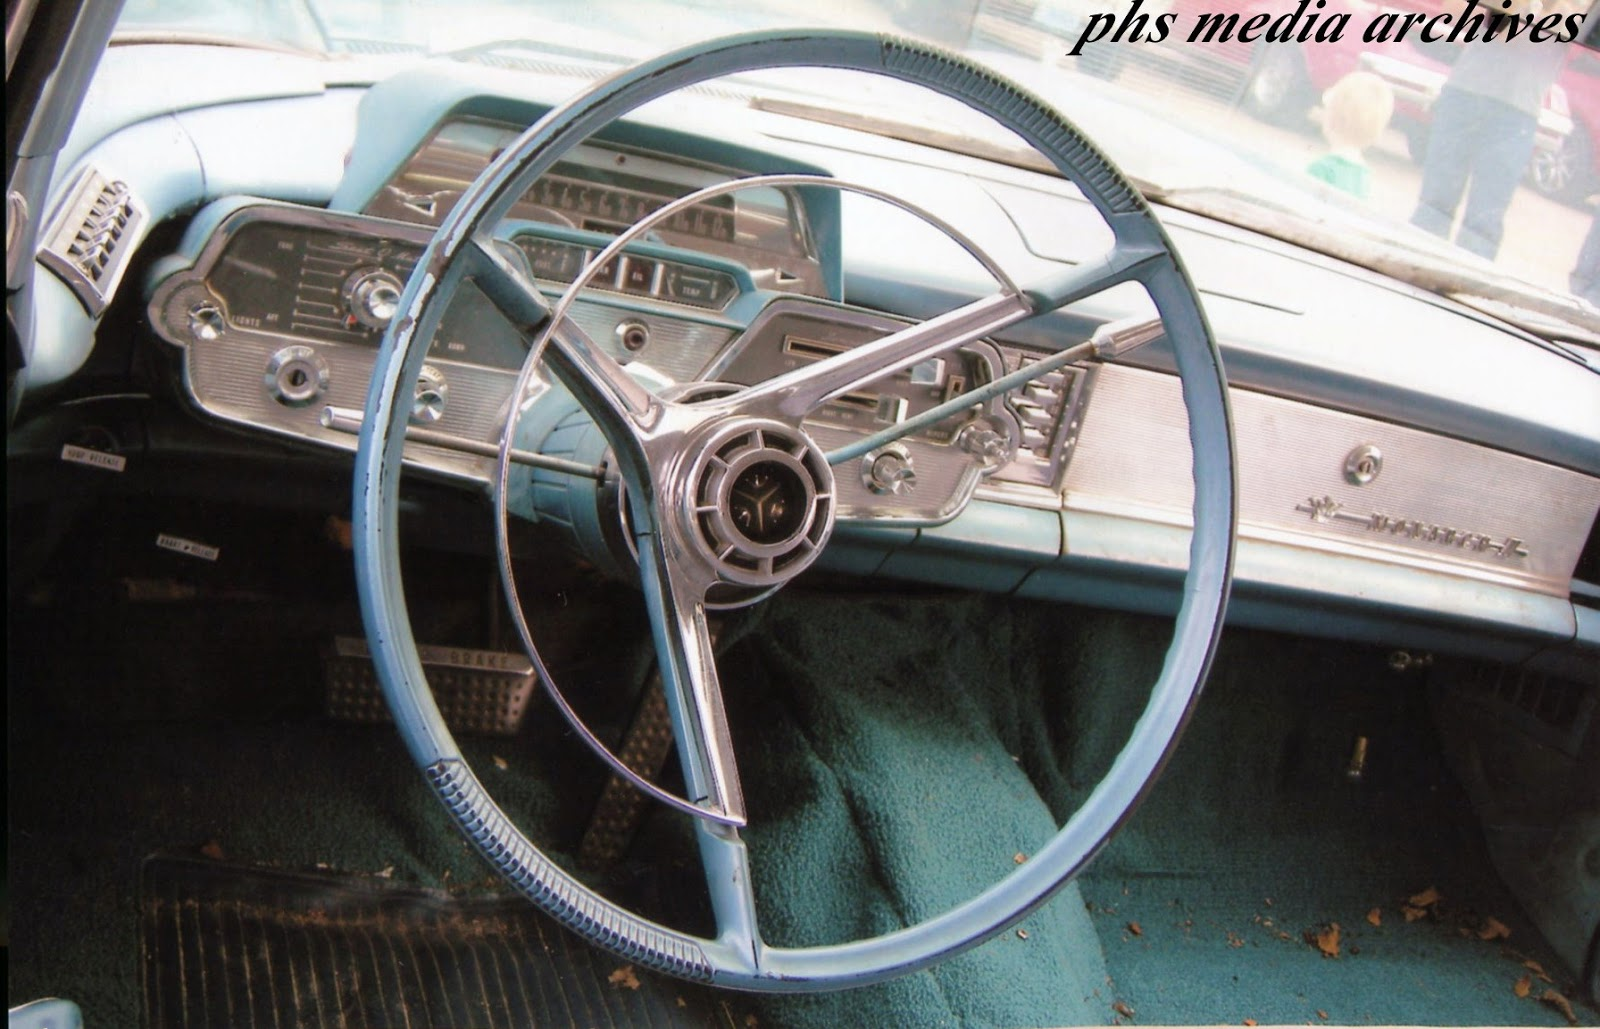 Phscollectorcarworld November 2017 Trunk Locks Wiring Diagram Of 1958 Ford Edsel And 59 Lincoln Car Was Nicely Equipped With Power Steering Brakes Automatic Trans Tinted Glass Windows Radio